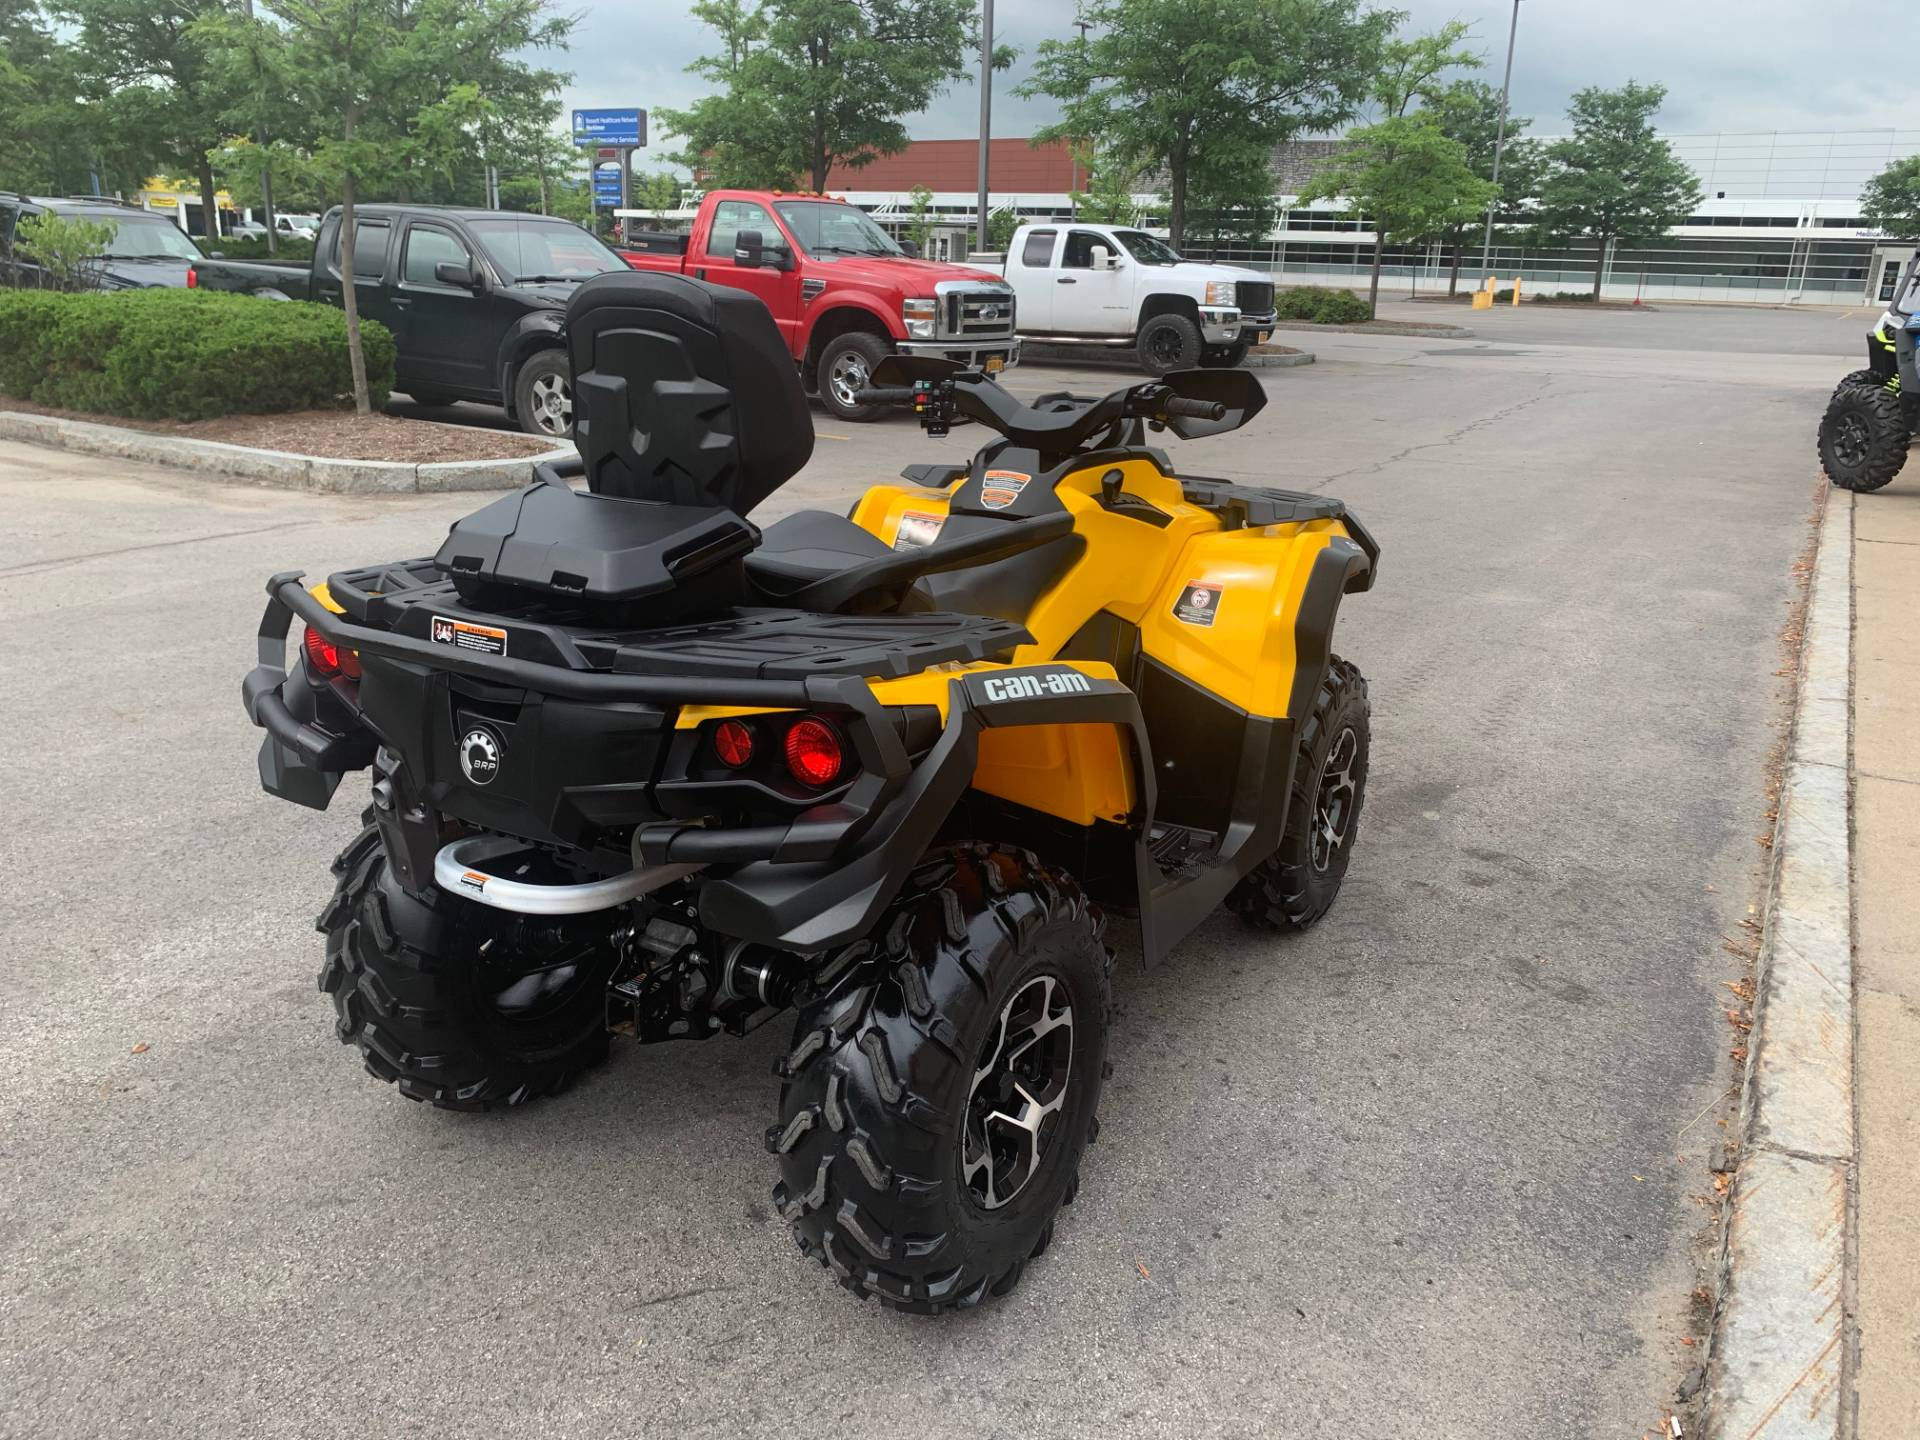 2016 Can-Am Outlander MAX XT 570 in Herkimer, New York - Photo 12